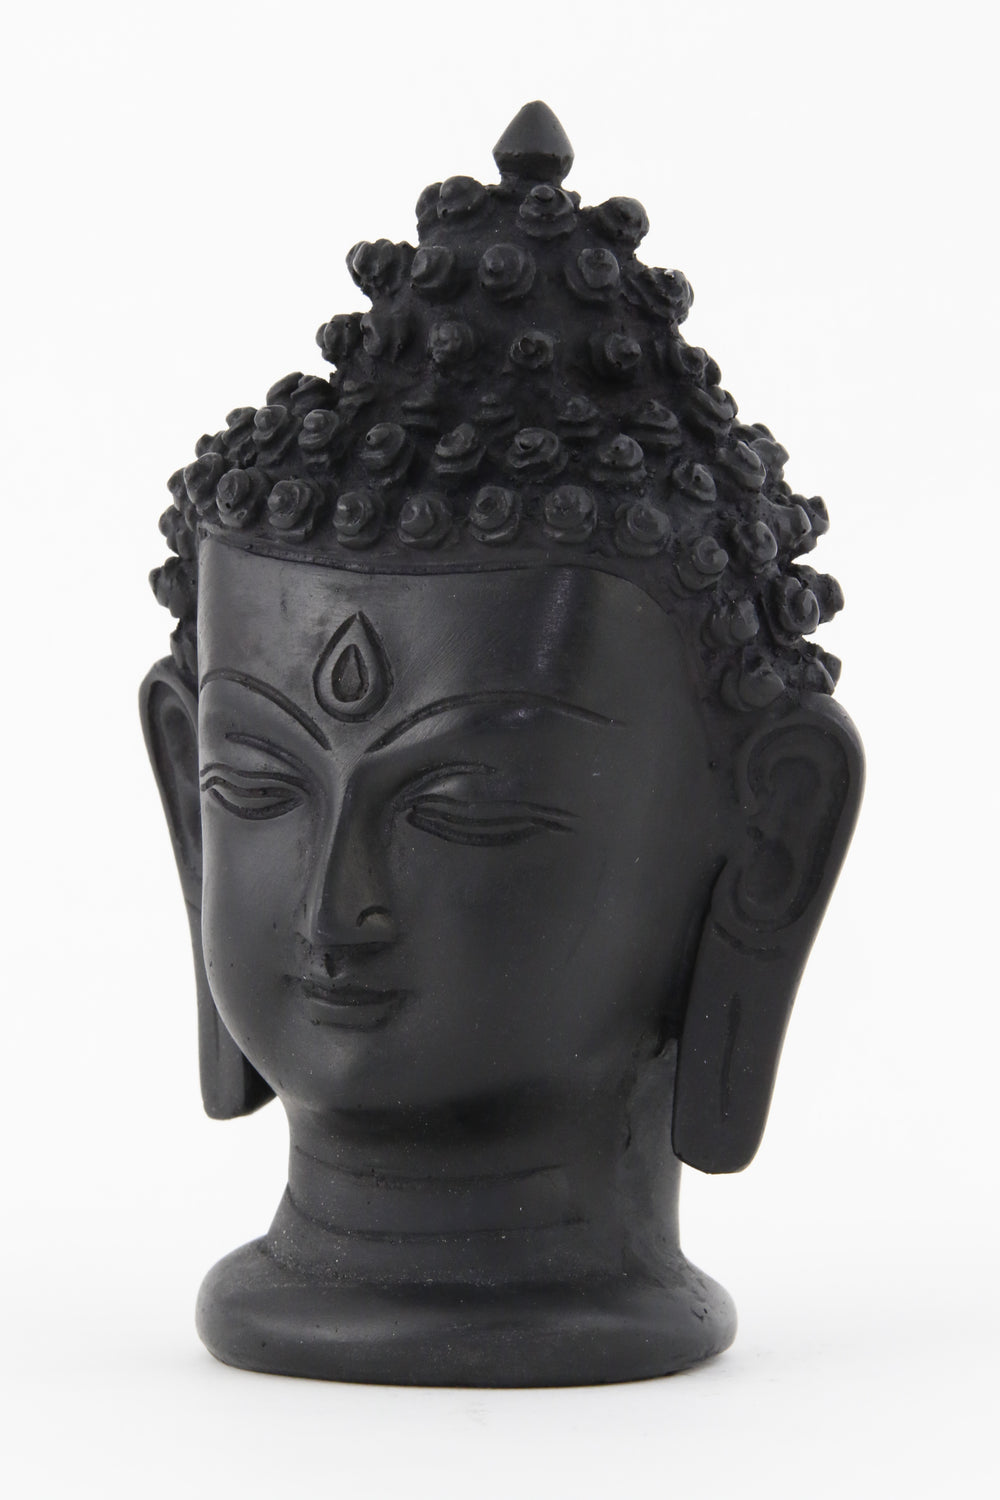 BUDDHA HEAD STATUE DARK LARGE SIDE VIEW